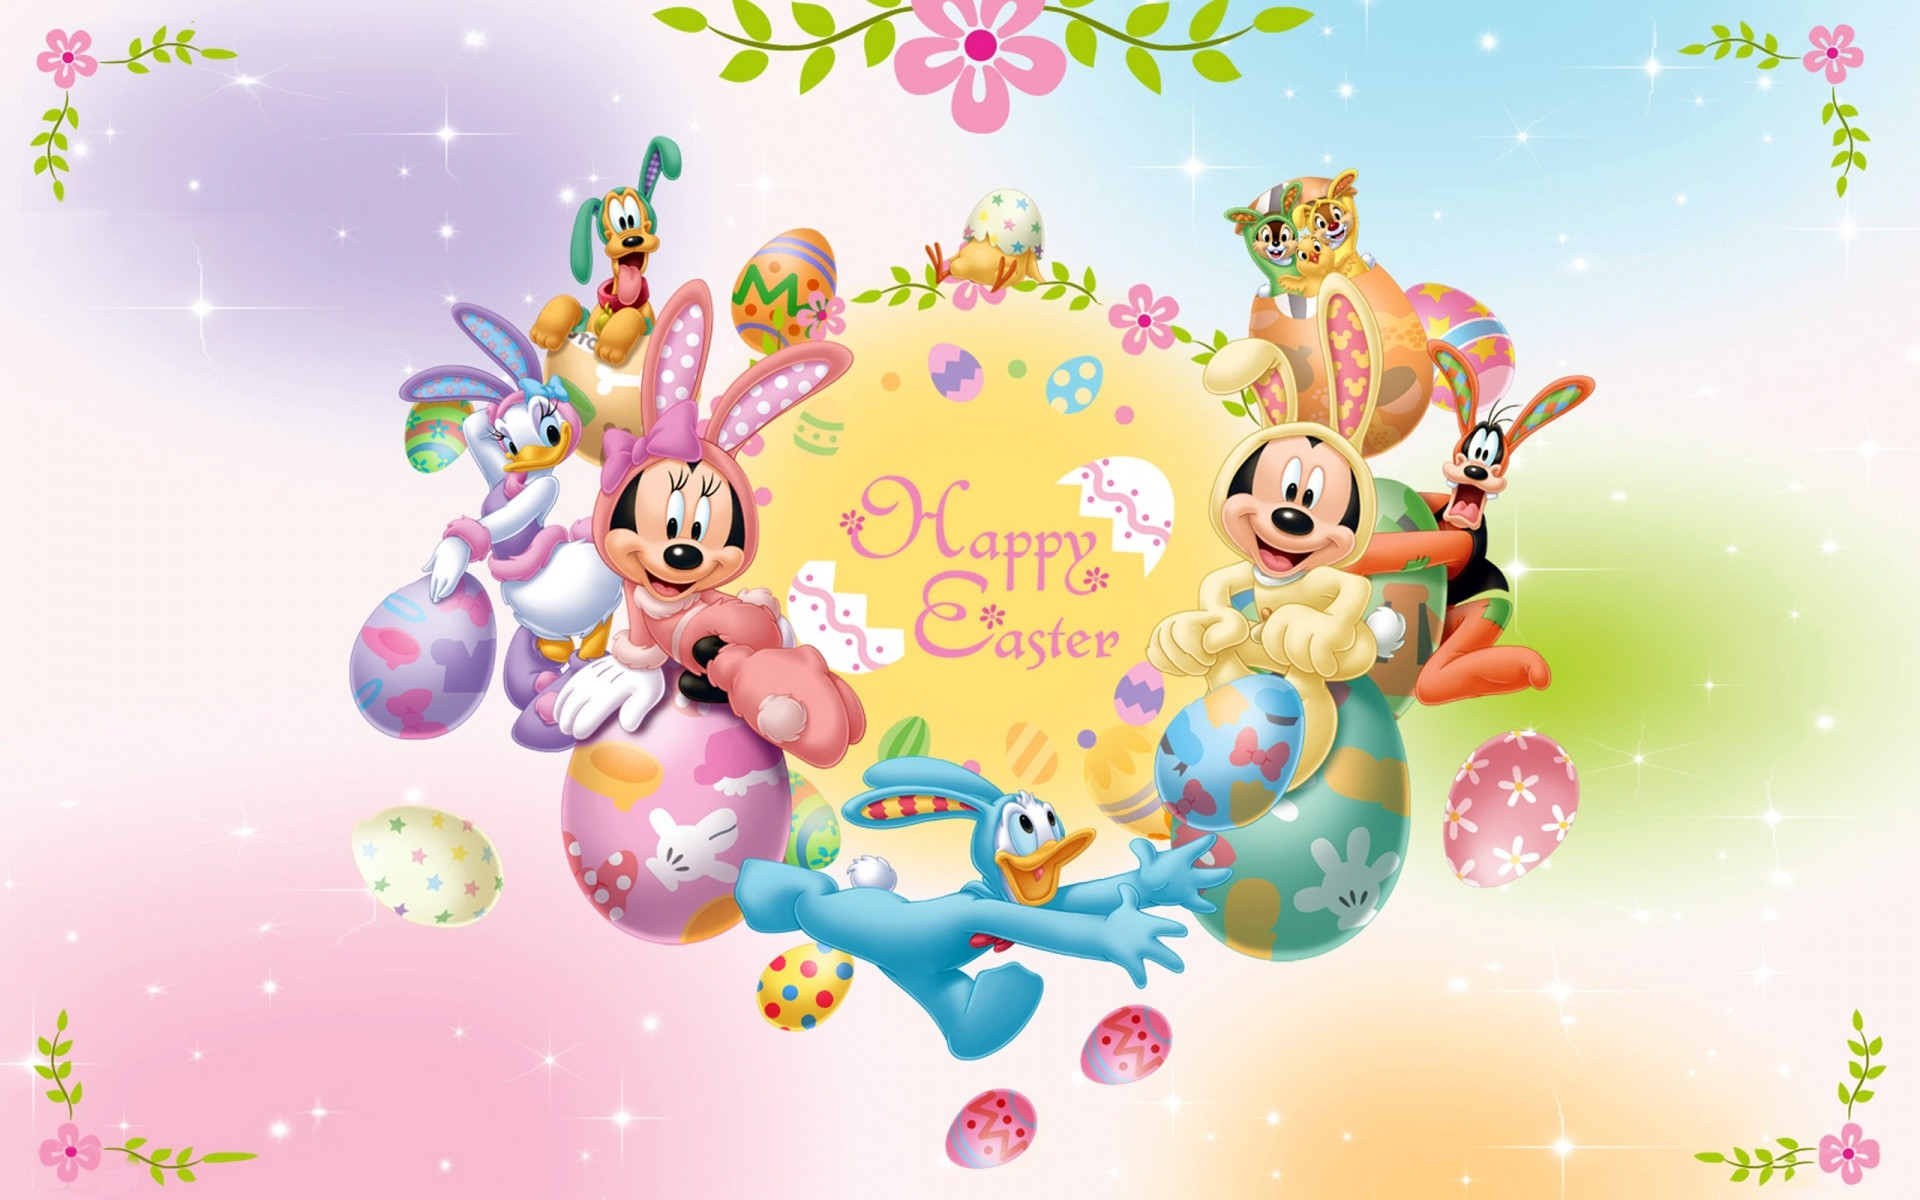 1920x1200 happy easter all my friend free 4k amazing background wallpapers pictures  desktop wallpapers mac desktop images widescreen 1920×1200 Wallpaper HD